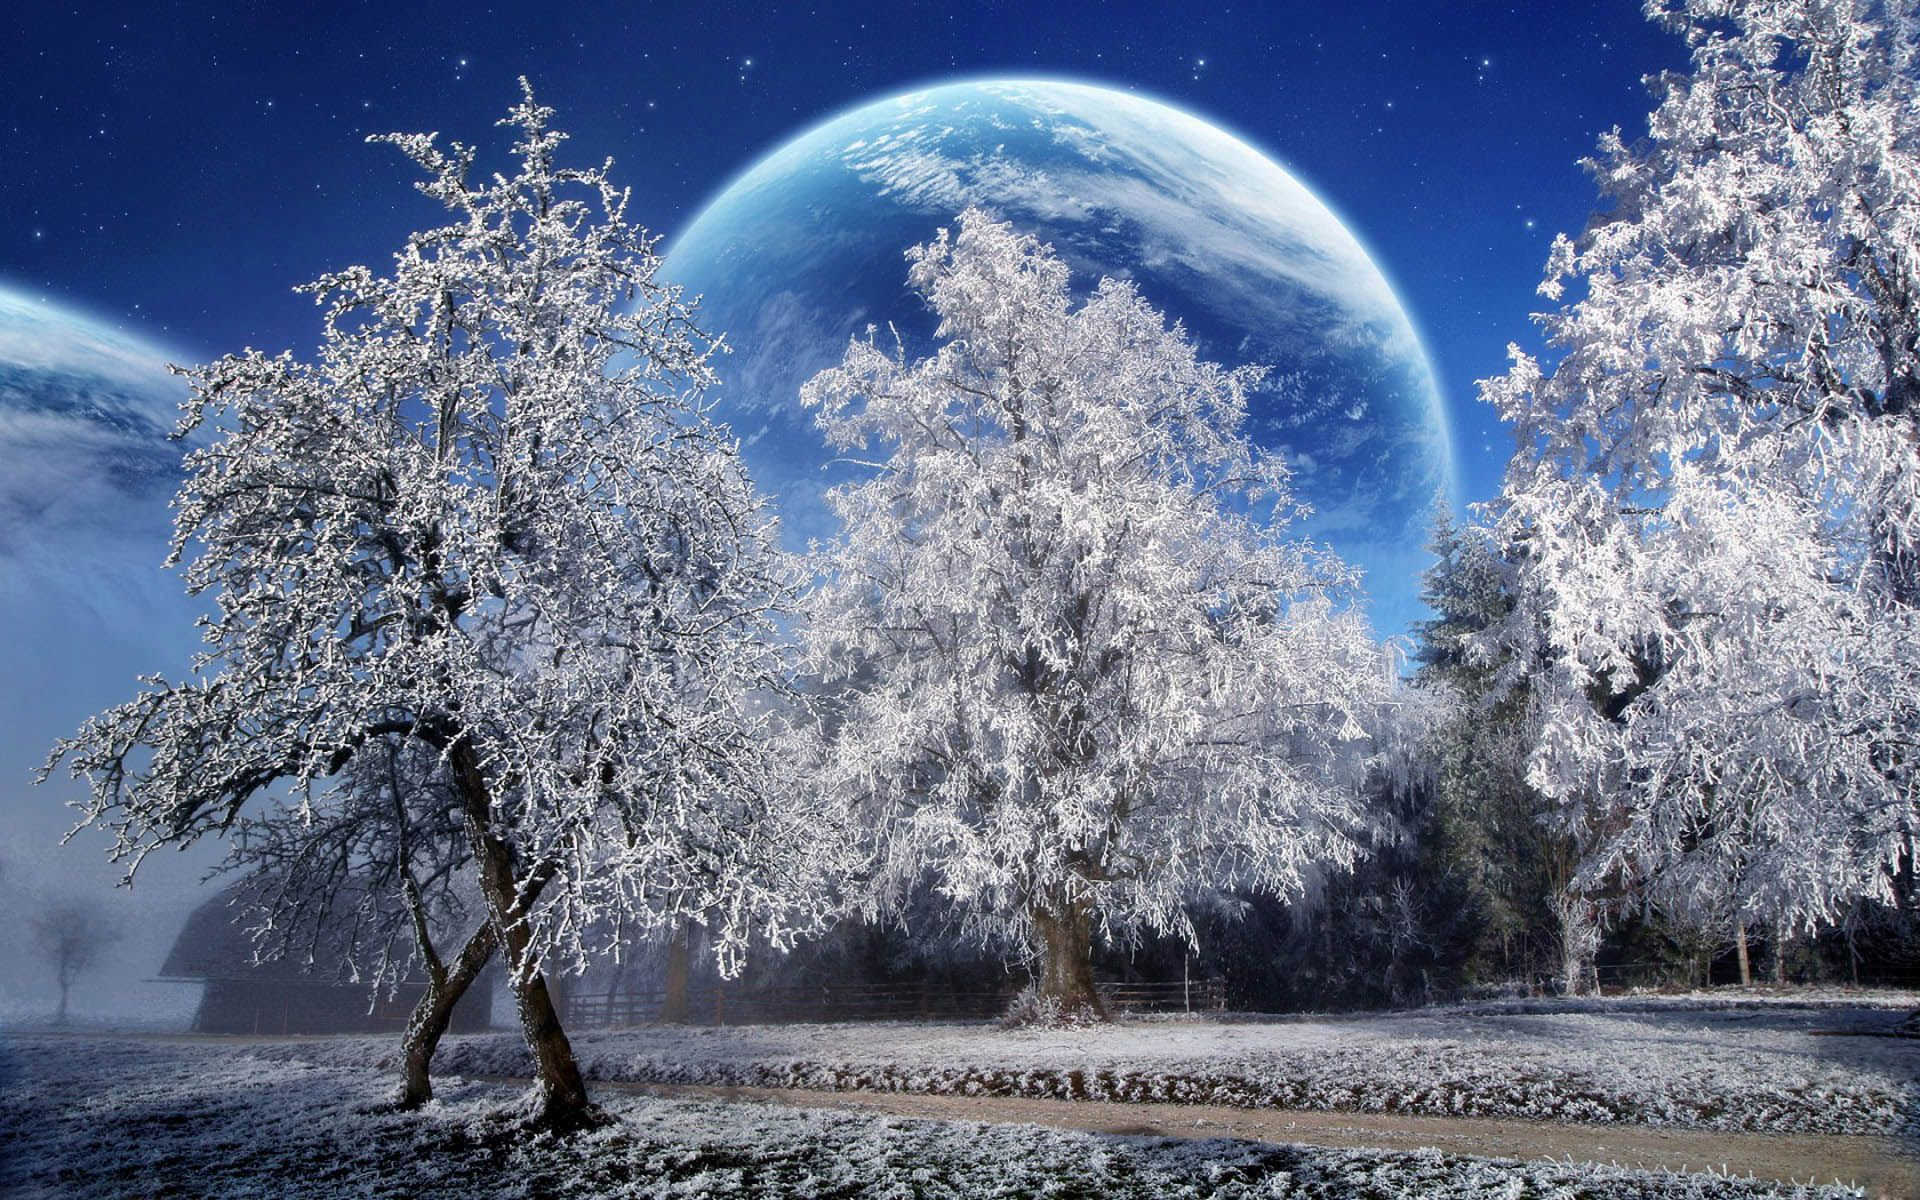 Free Download Winter Scenery Powerpoint Backgrounds Powerpoint E Winter Pictures Winter Scenery Winter Wallpaper